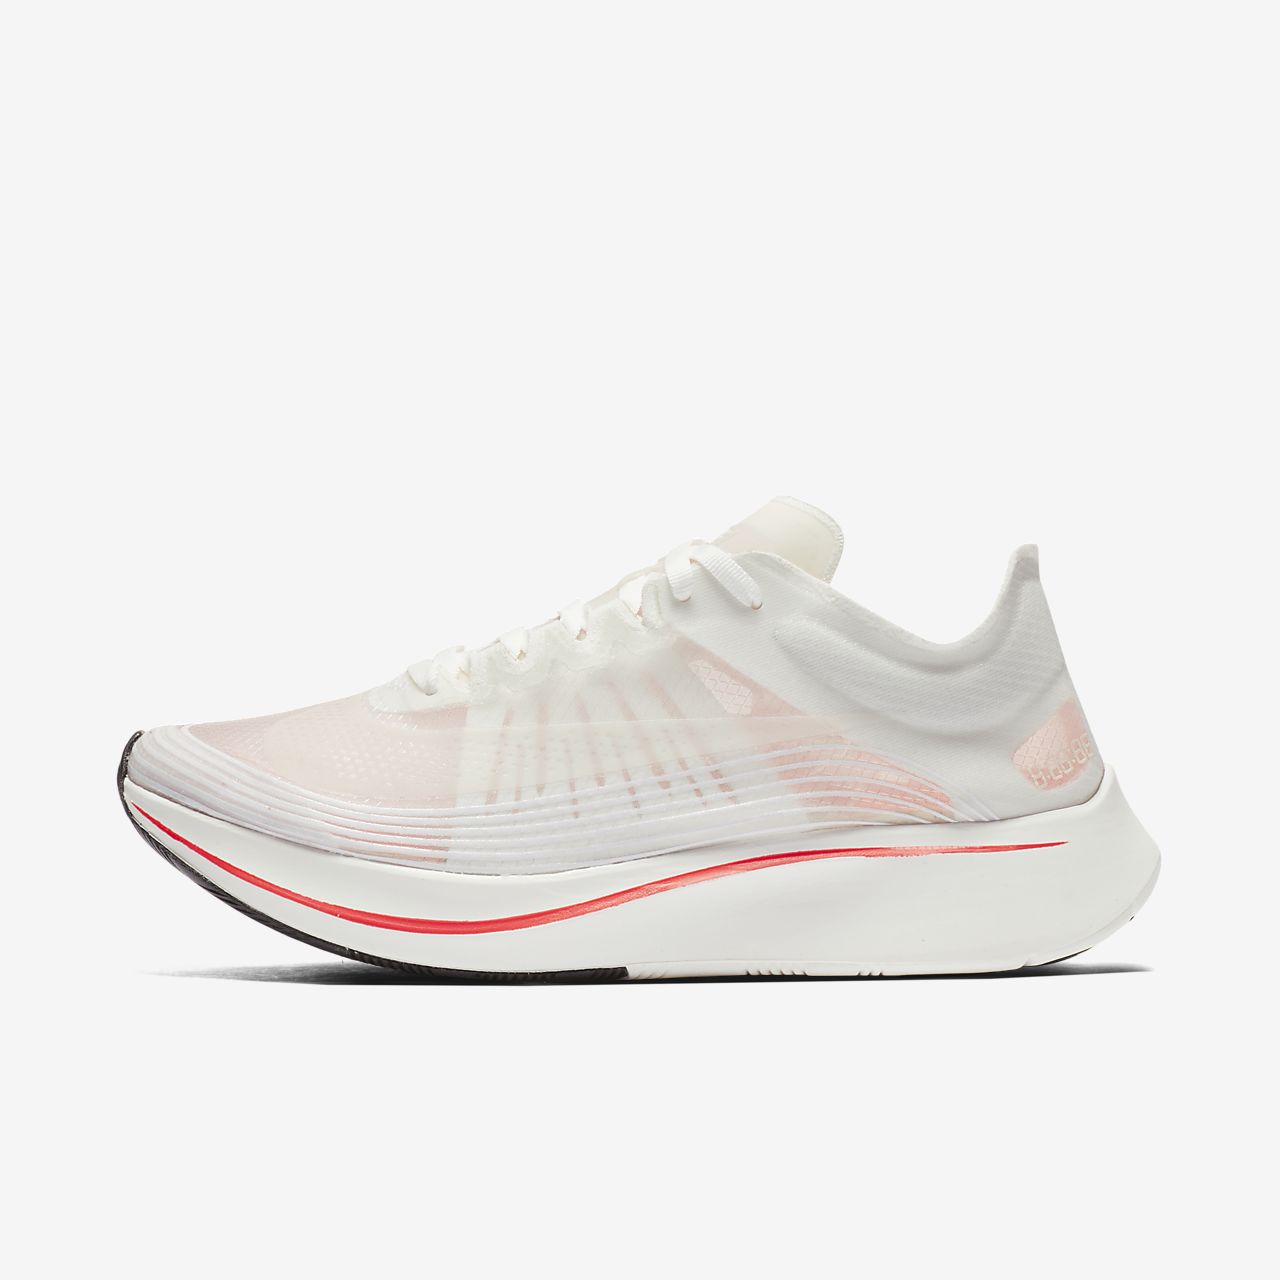 606fa463451e6 Nike Zoom Fly SP Women s Running Shoe. Nike.com AU